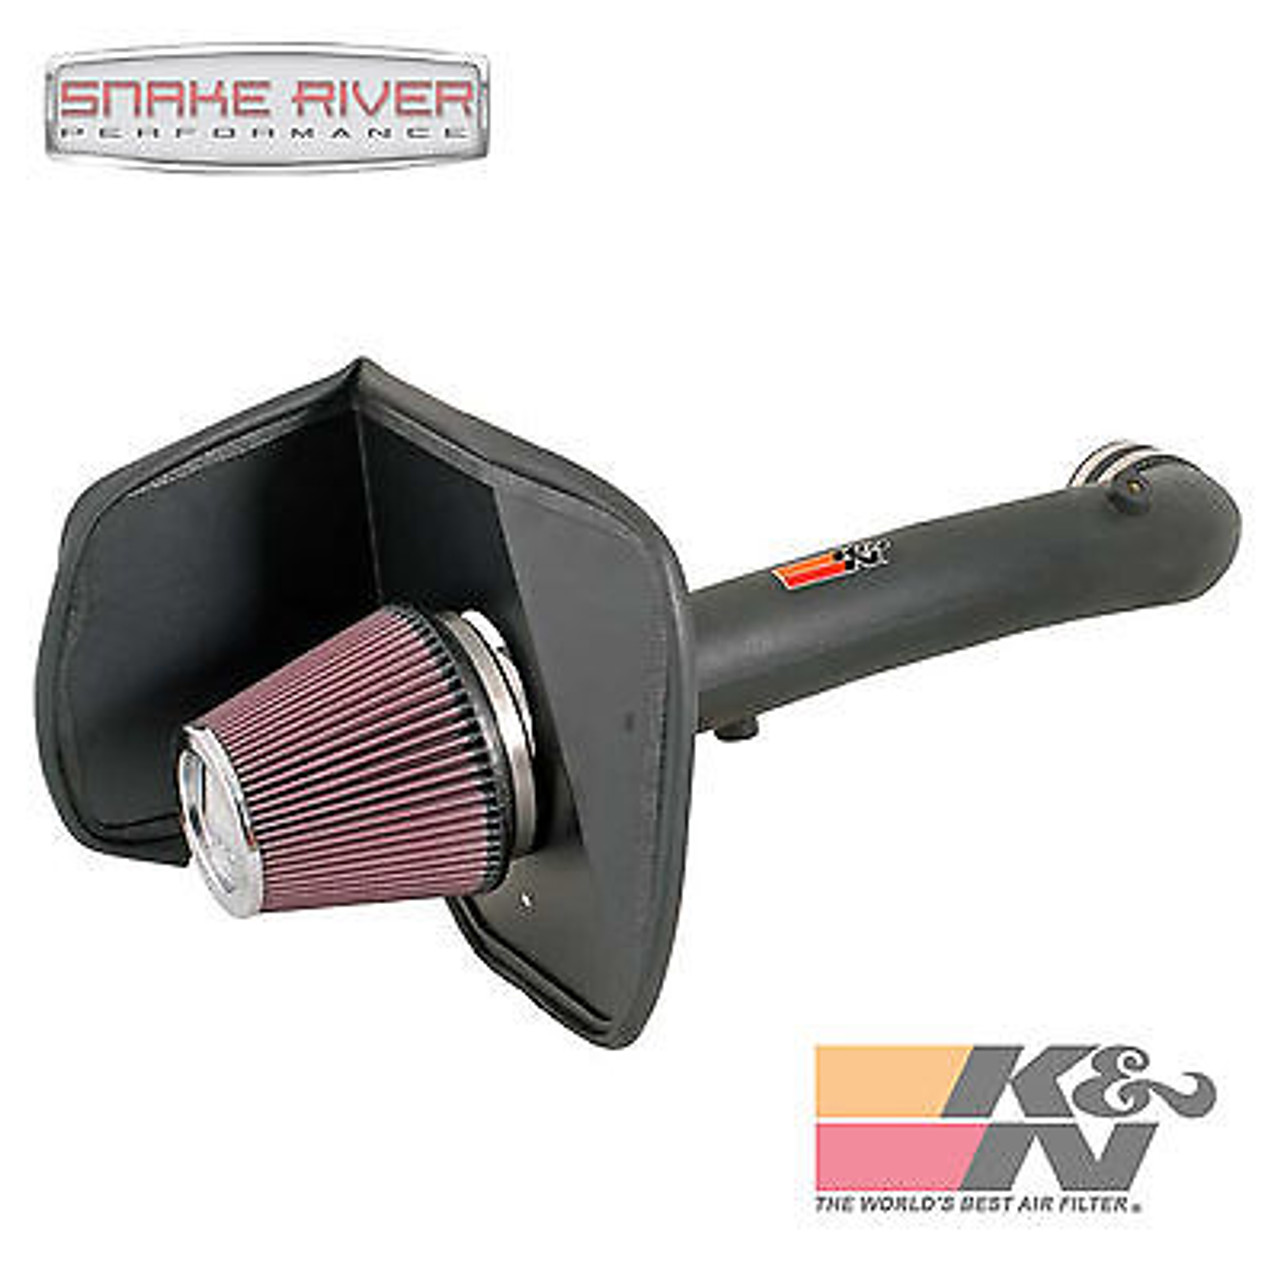 K/&N Performance Cold Air Intake Kit 63-9025 with Lifetime Filter for 2005-2011 Toyota Tacoma 4.0L V6